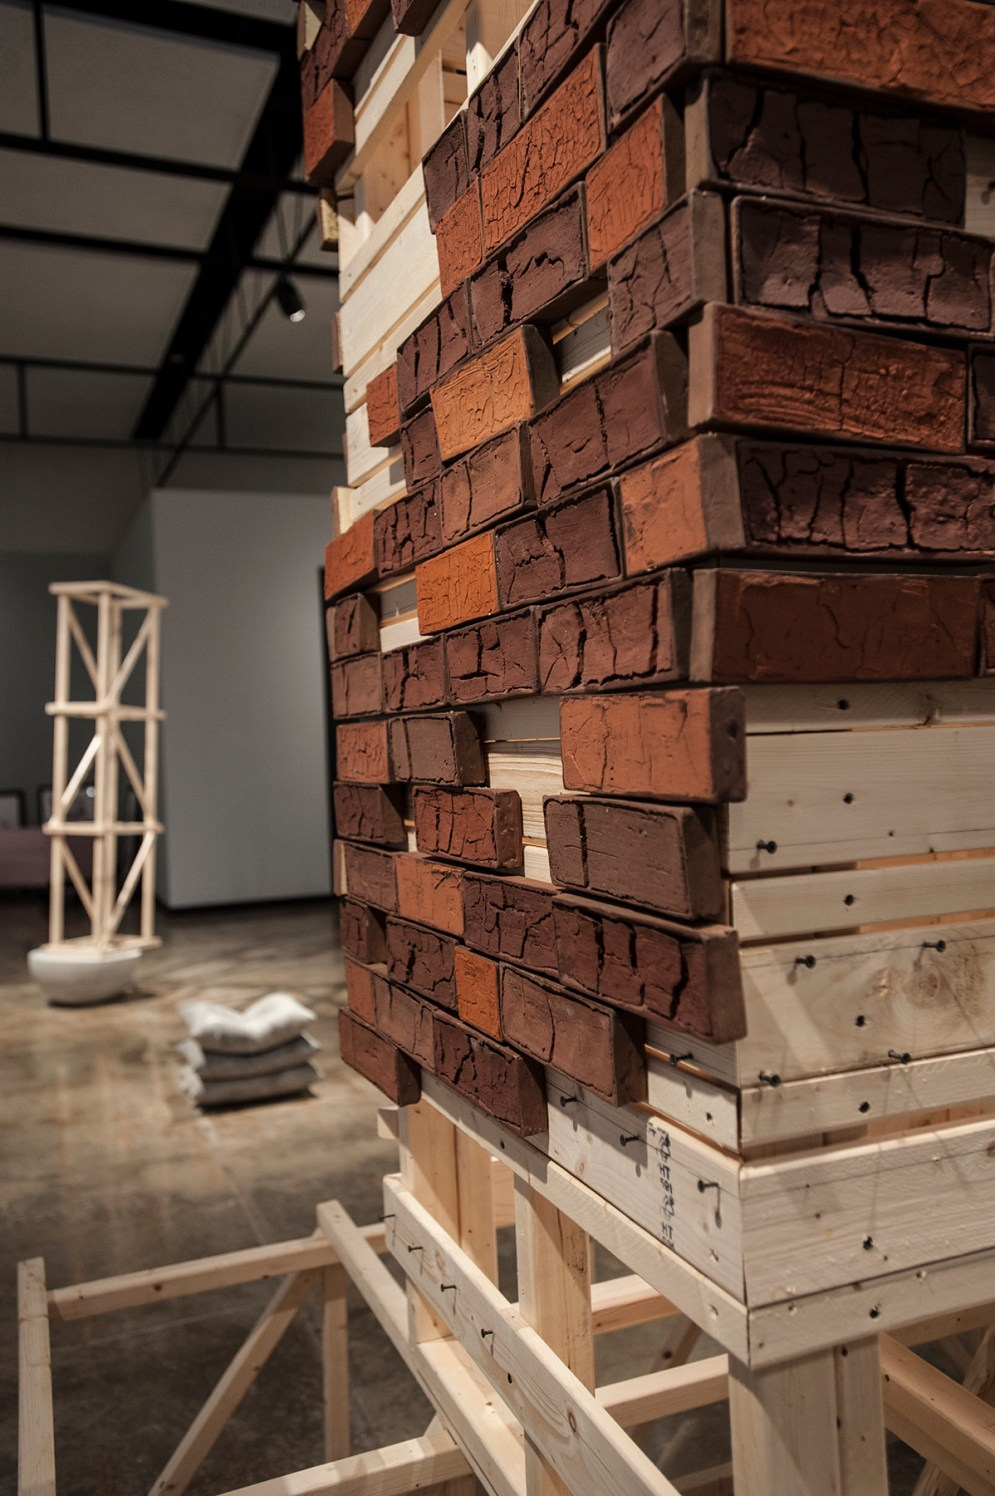 Detail of brick tower constructed of wood and handmade bricks made from soil in Frog Jump, TN